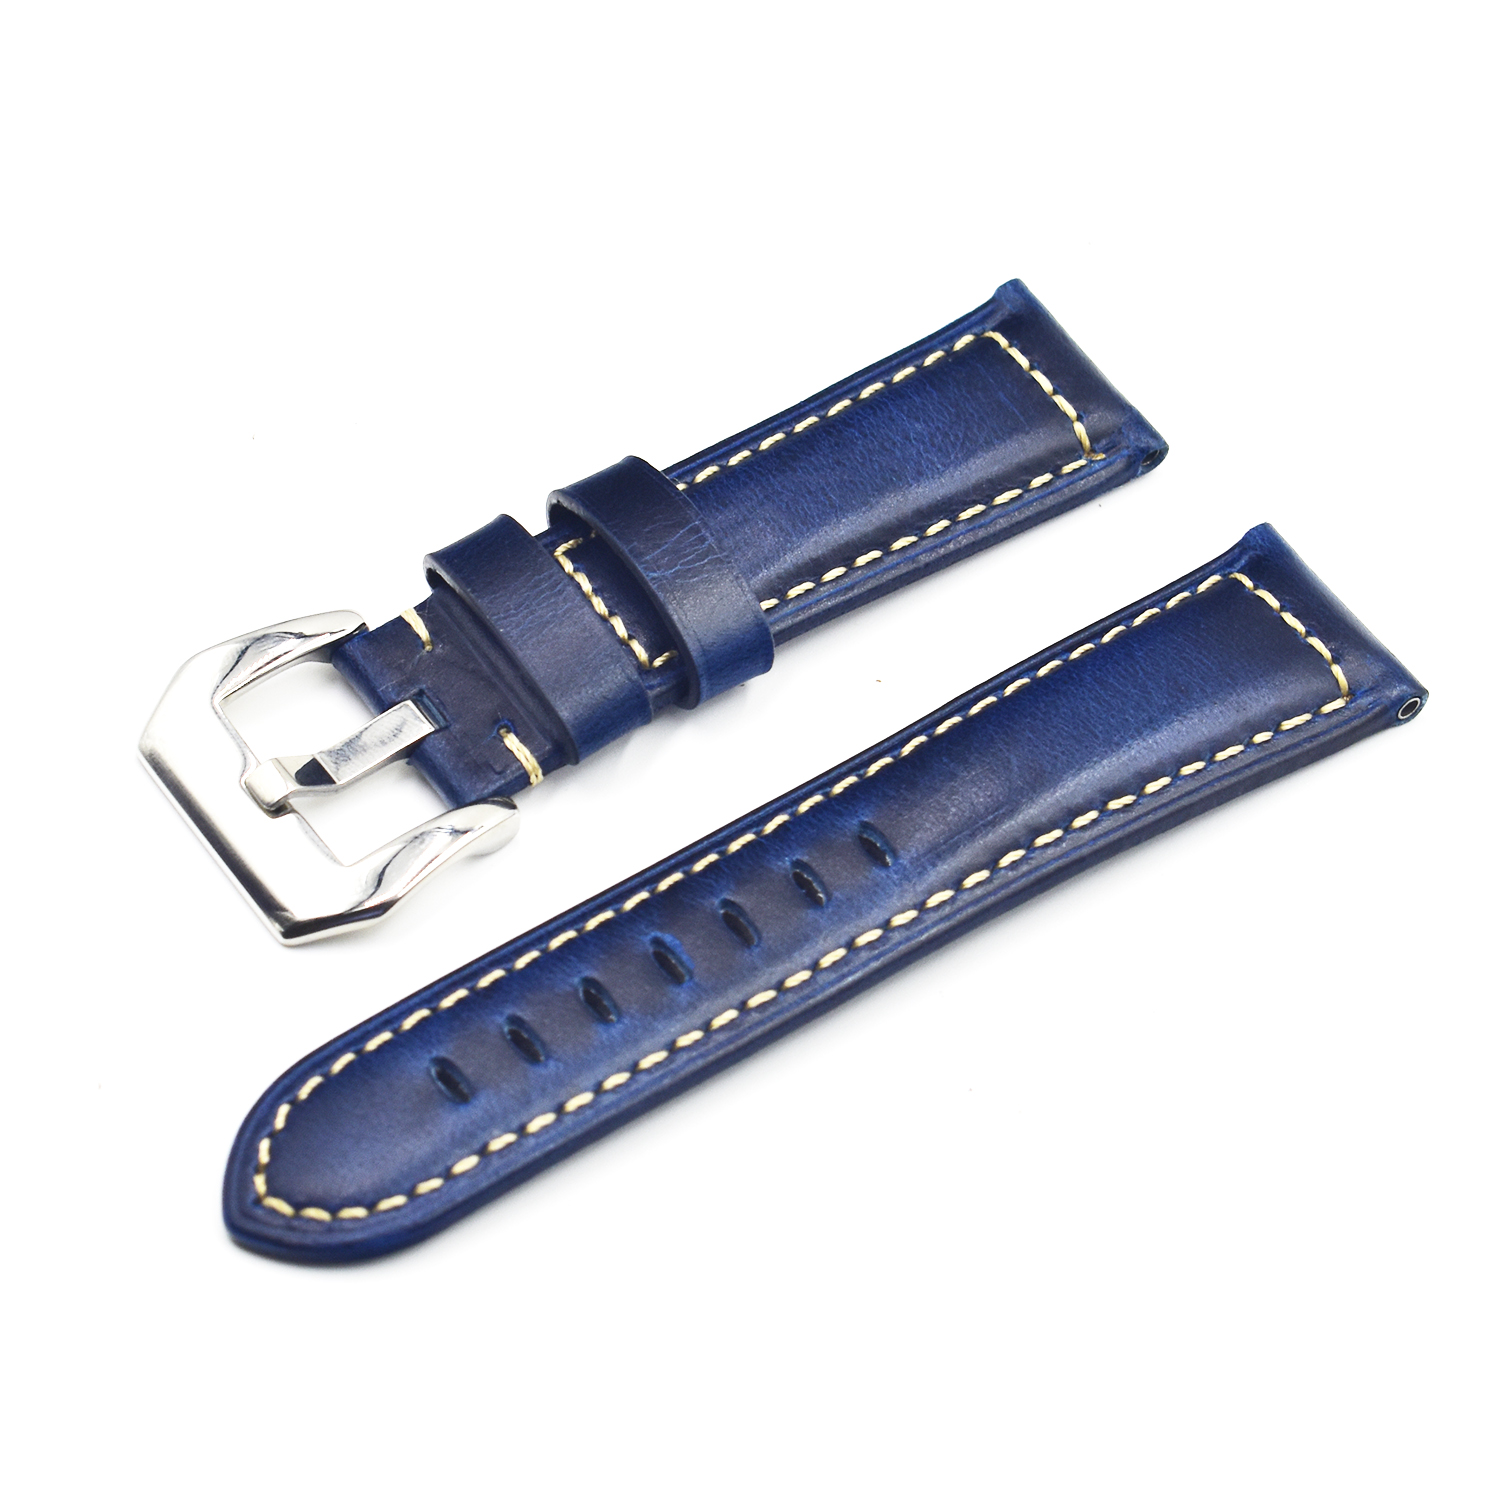 Leather Watch Band  Horween Leather Strap in Natural Chromexcel Custom and Handmade 18mm, 20mm, 22mm, 24mm watch strap for PAM